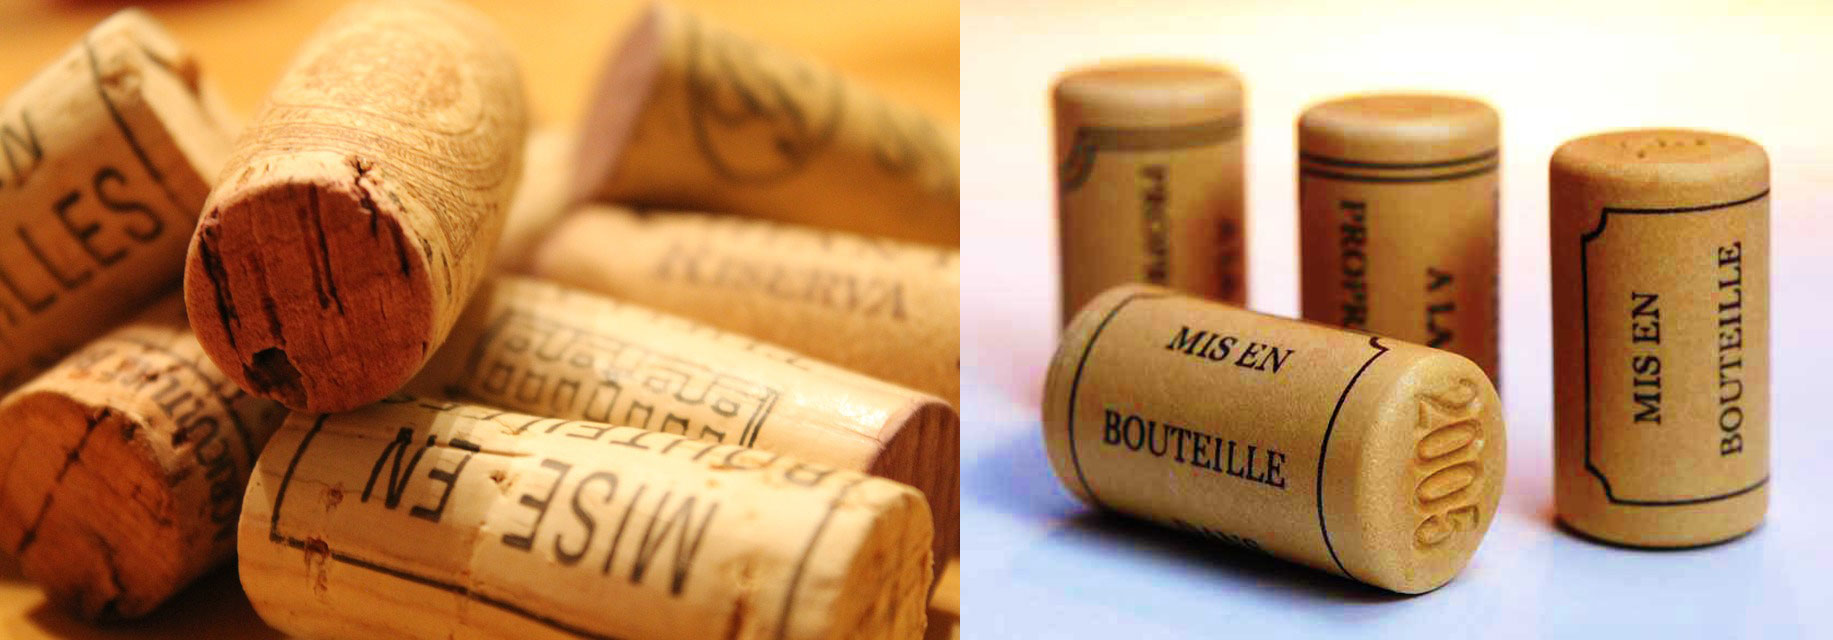 natural and synthetic corks